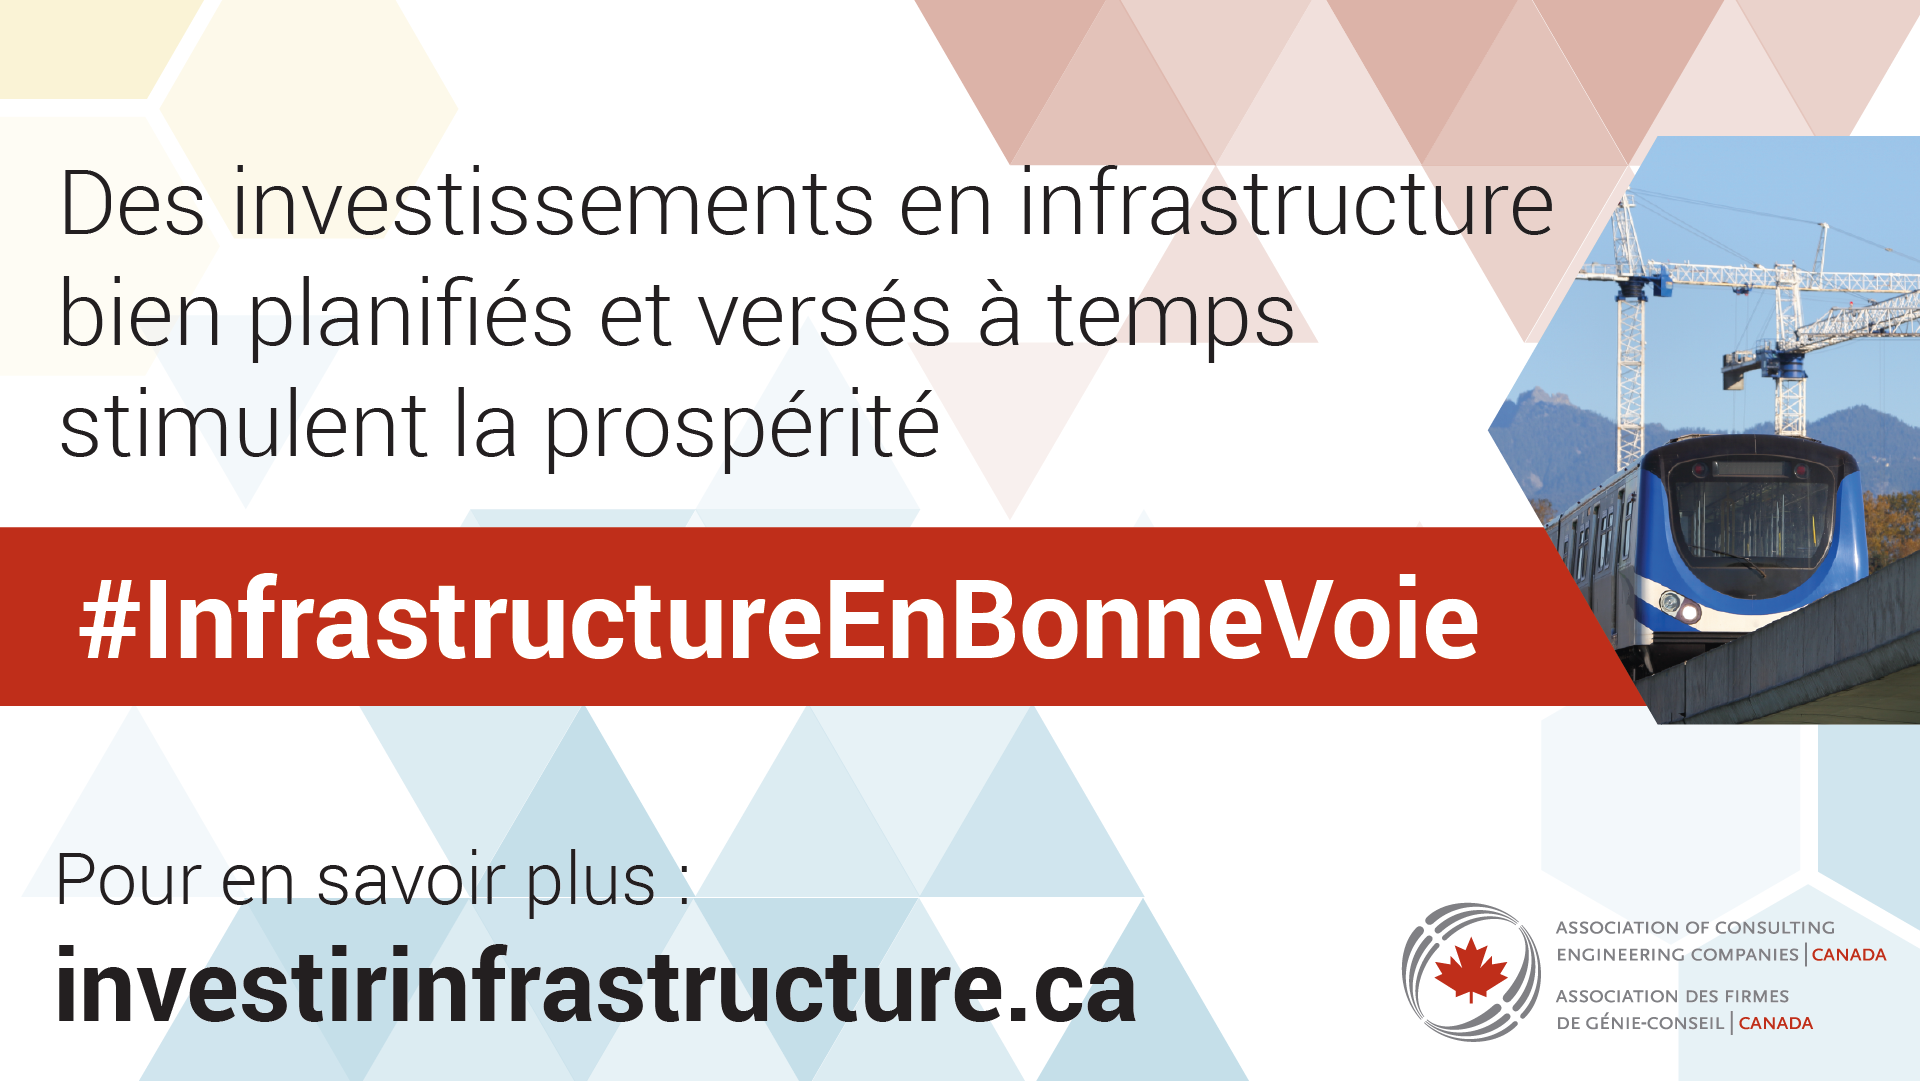 invest infrastructure shareables-03.png